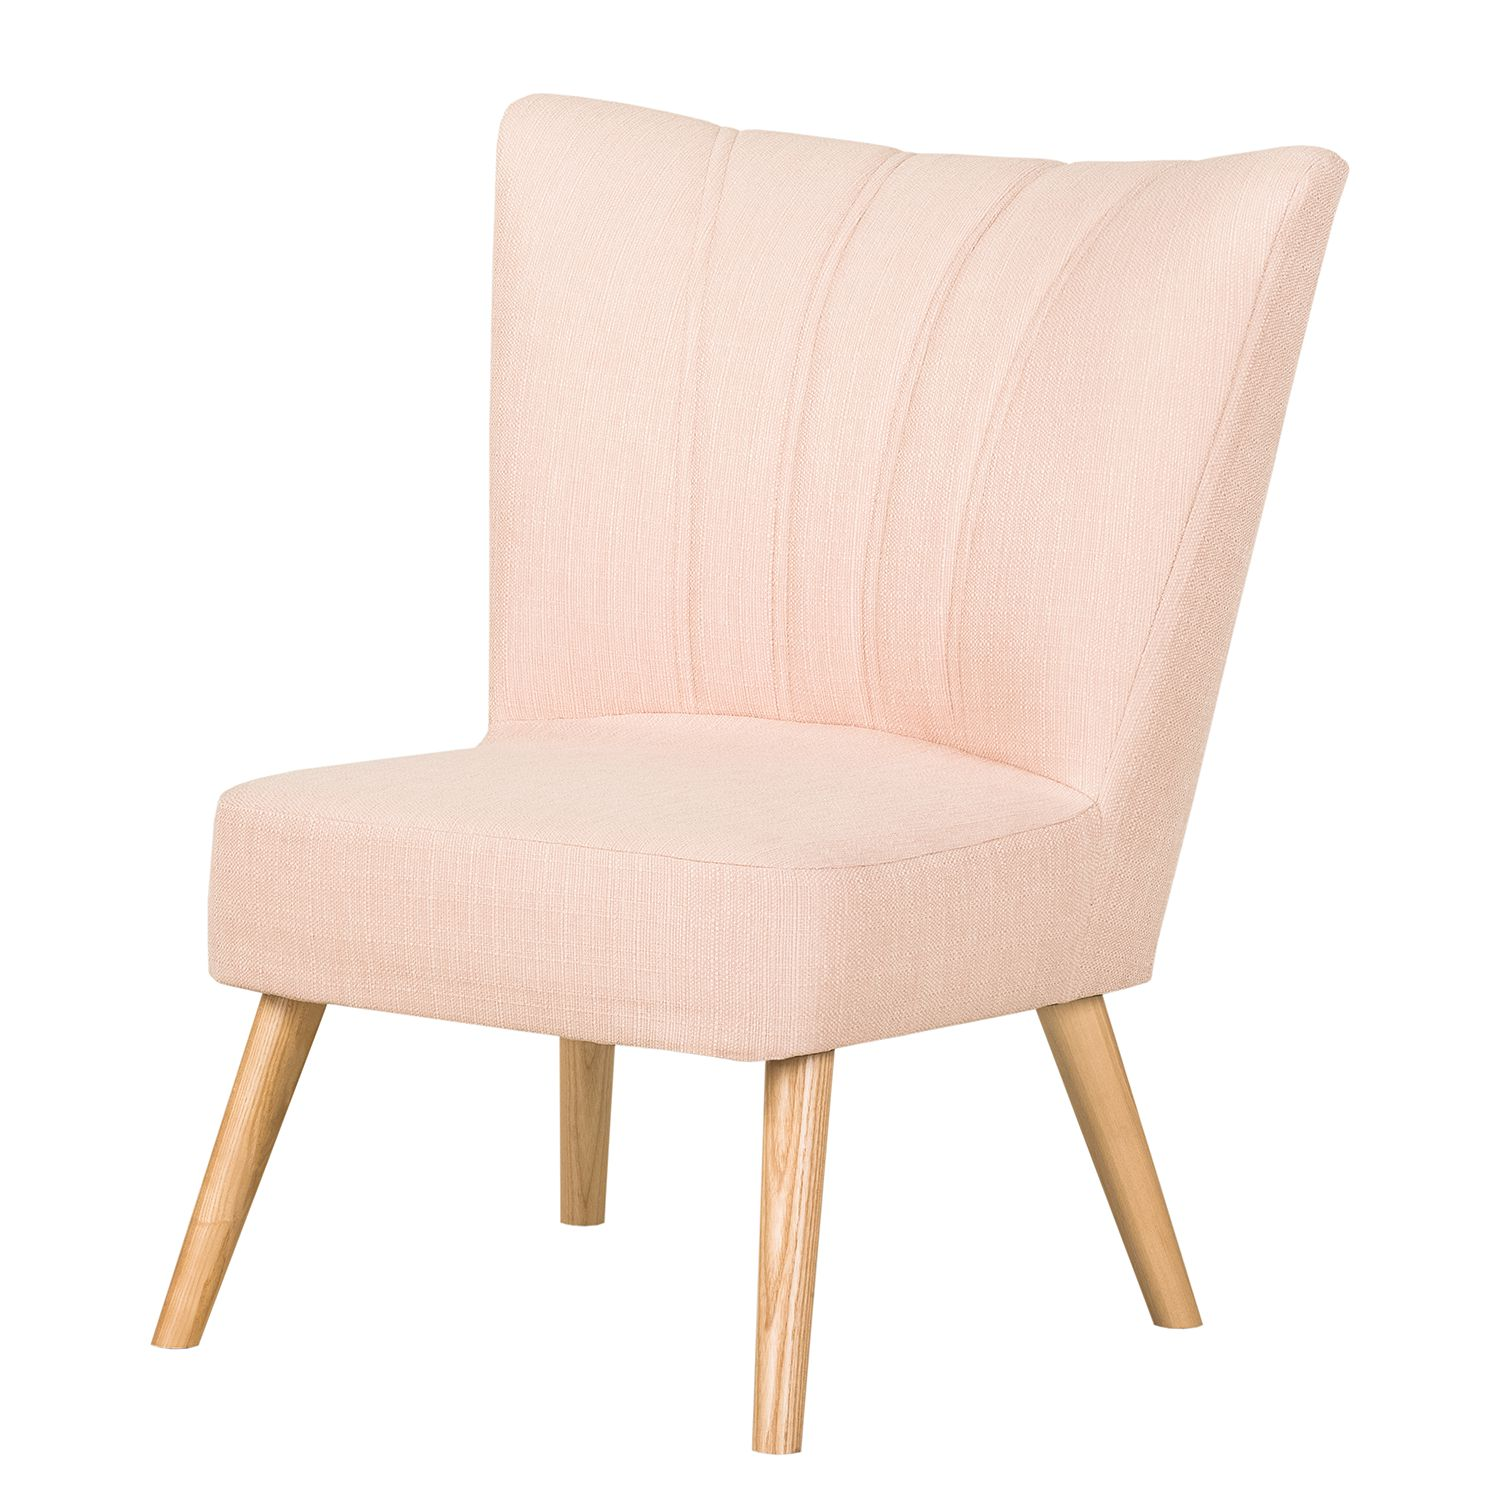 Fauteuil Oona I - Tissu Beige - Couleur pastel abricot, kollected by Johanna